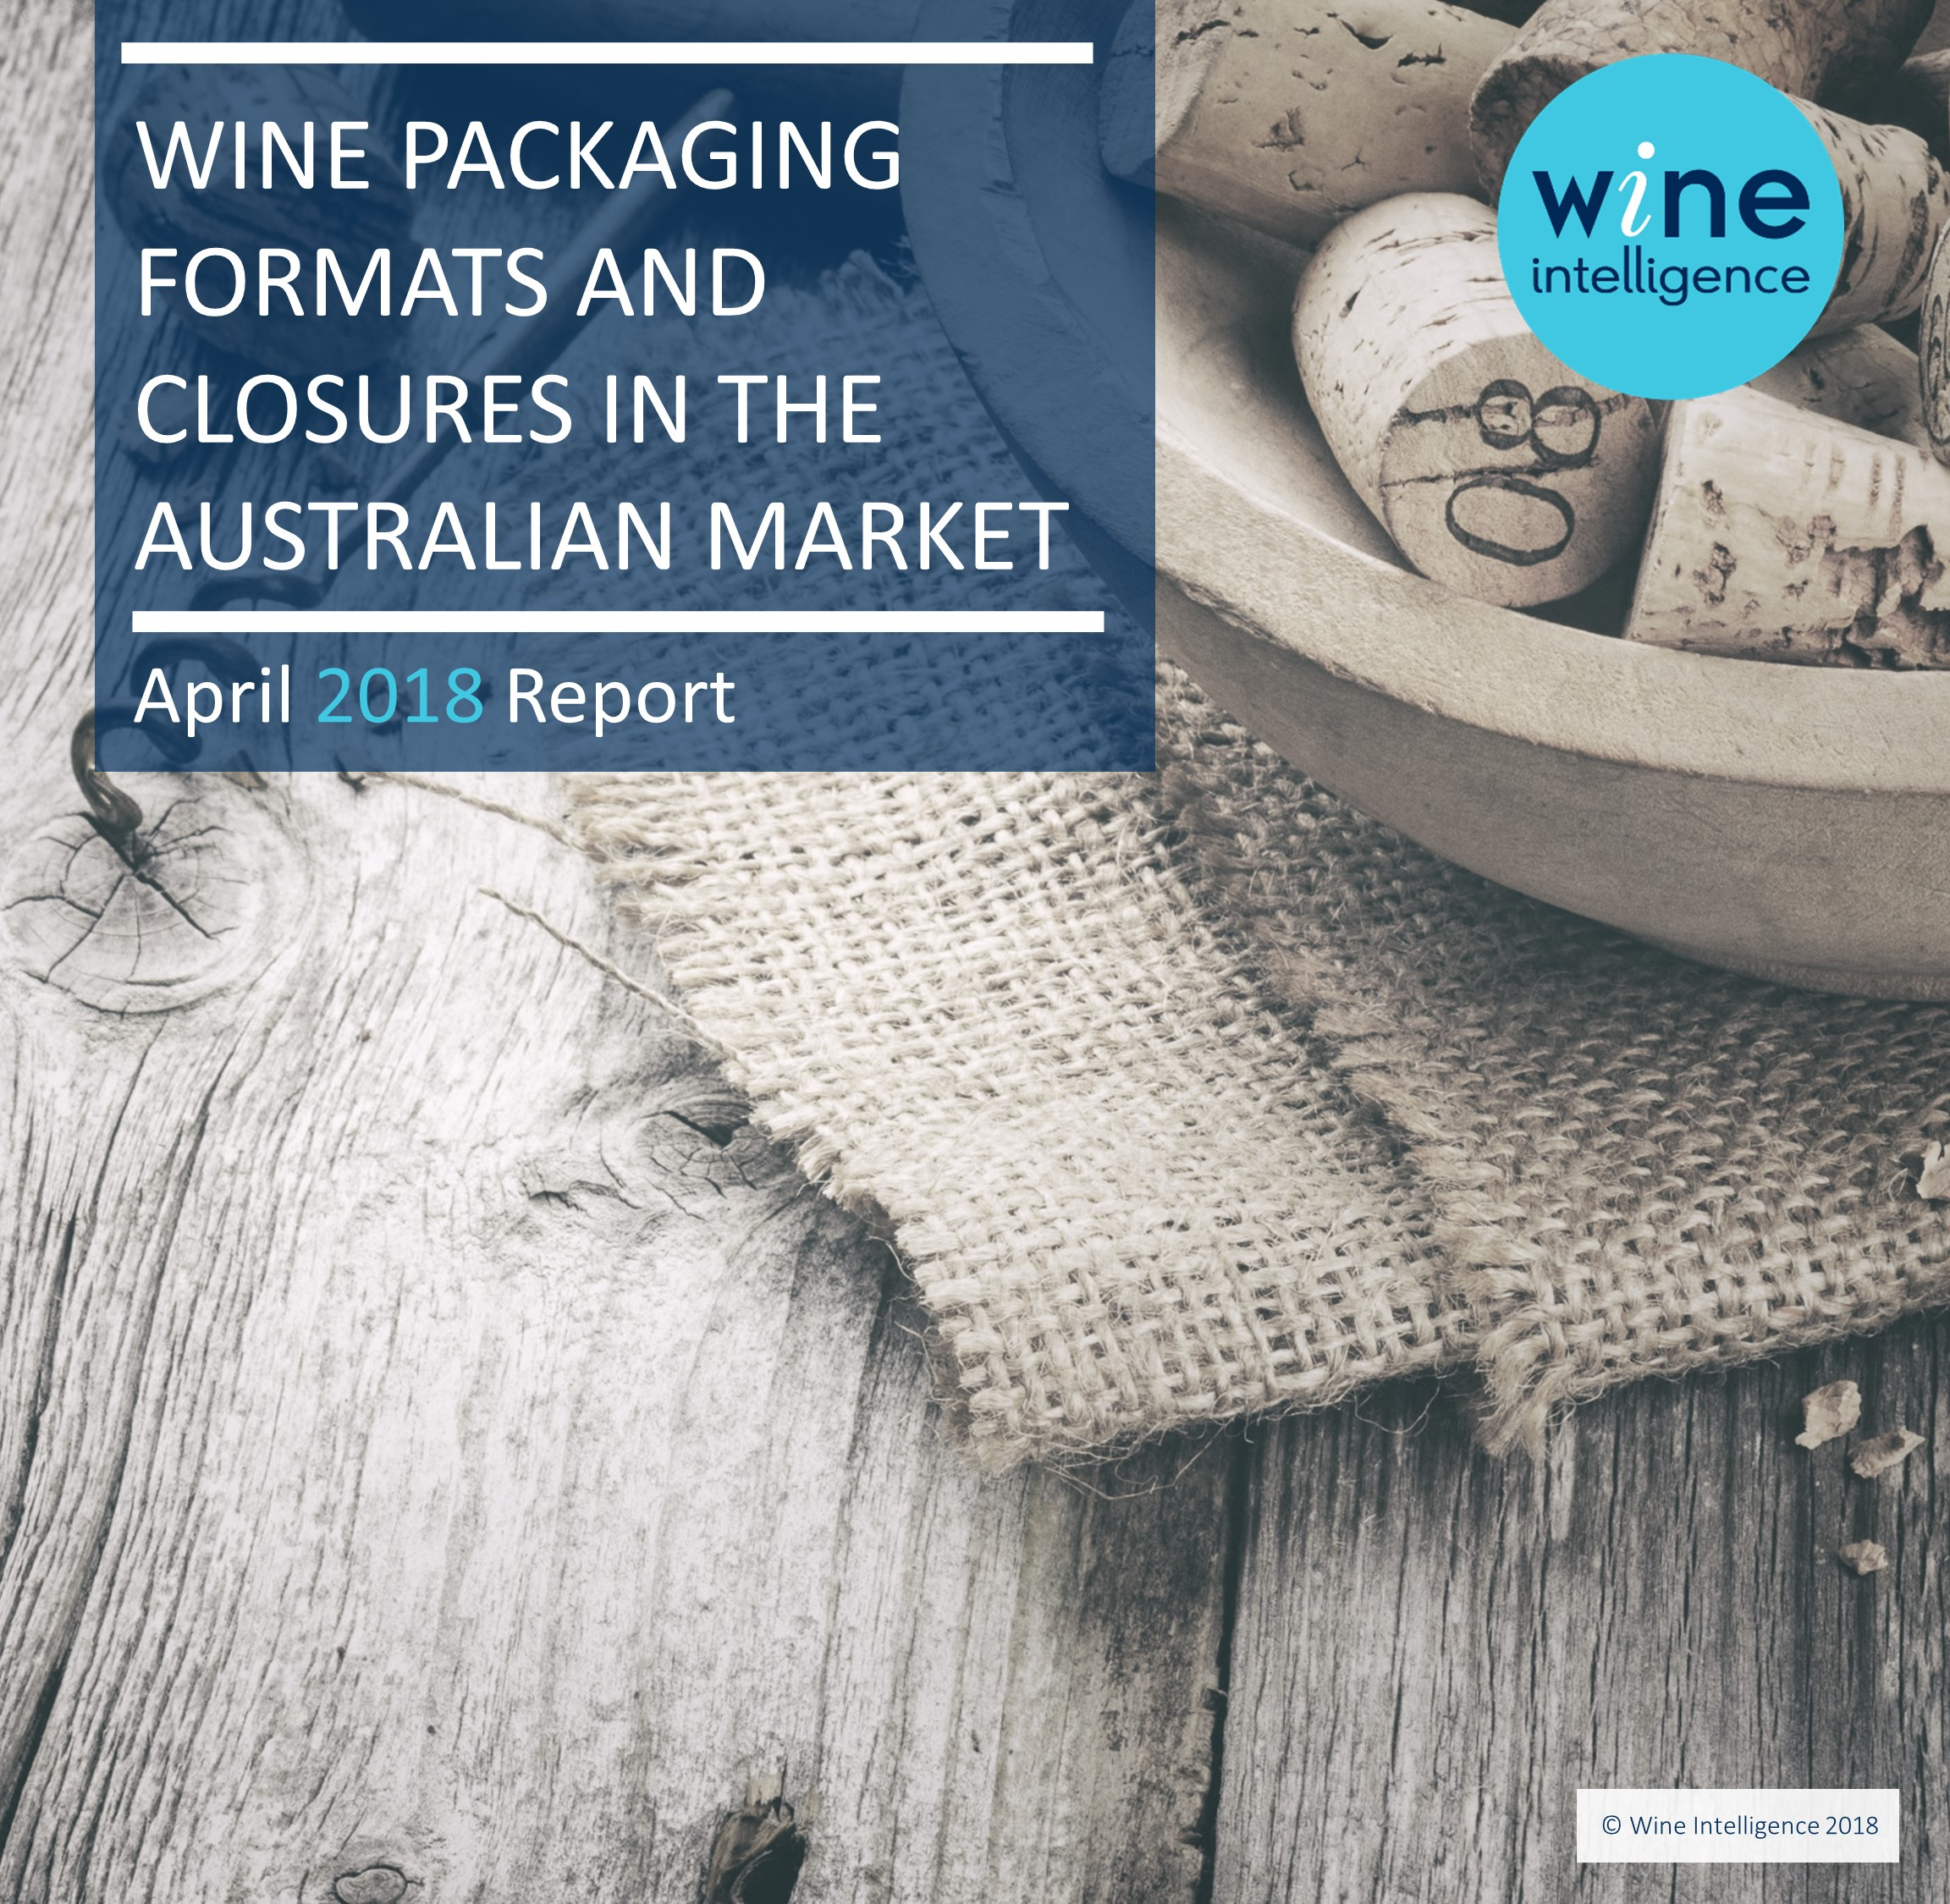 Australia Packaing Formats and Closures in the Australian Market 2018 - Press Release: Young consumers in Australia are more comfortable buying wine in alternative size formats compared to their older peers, according to a new report by Wine Intelligence